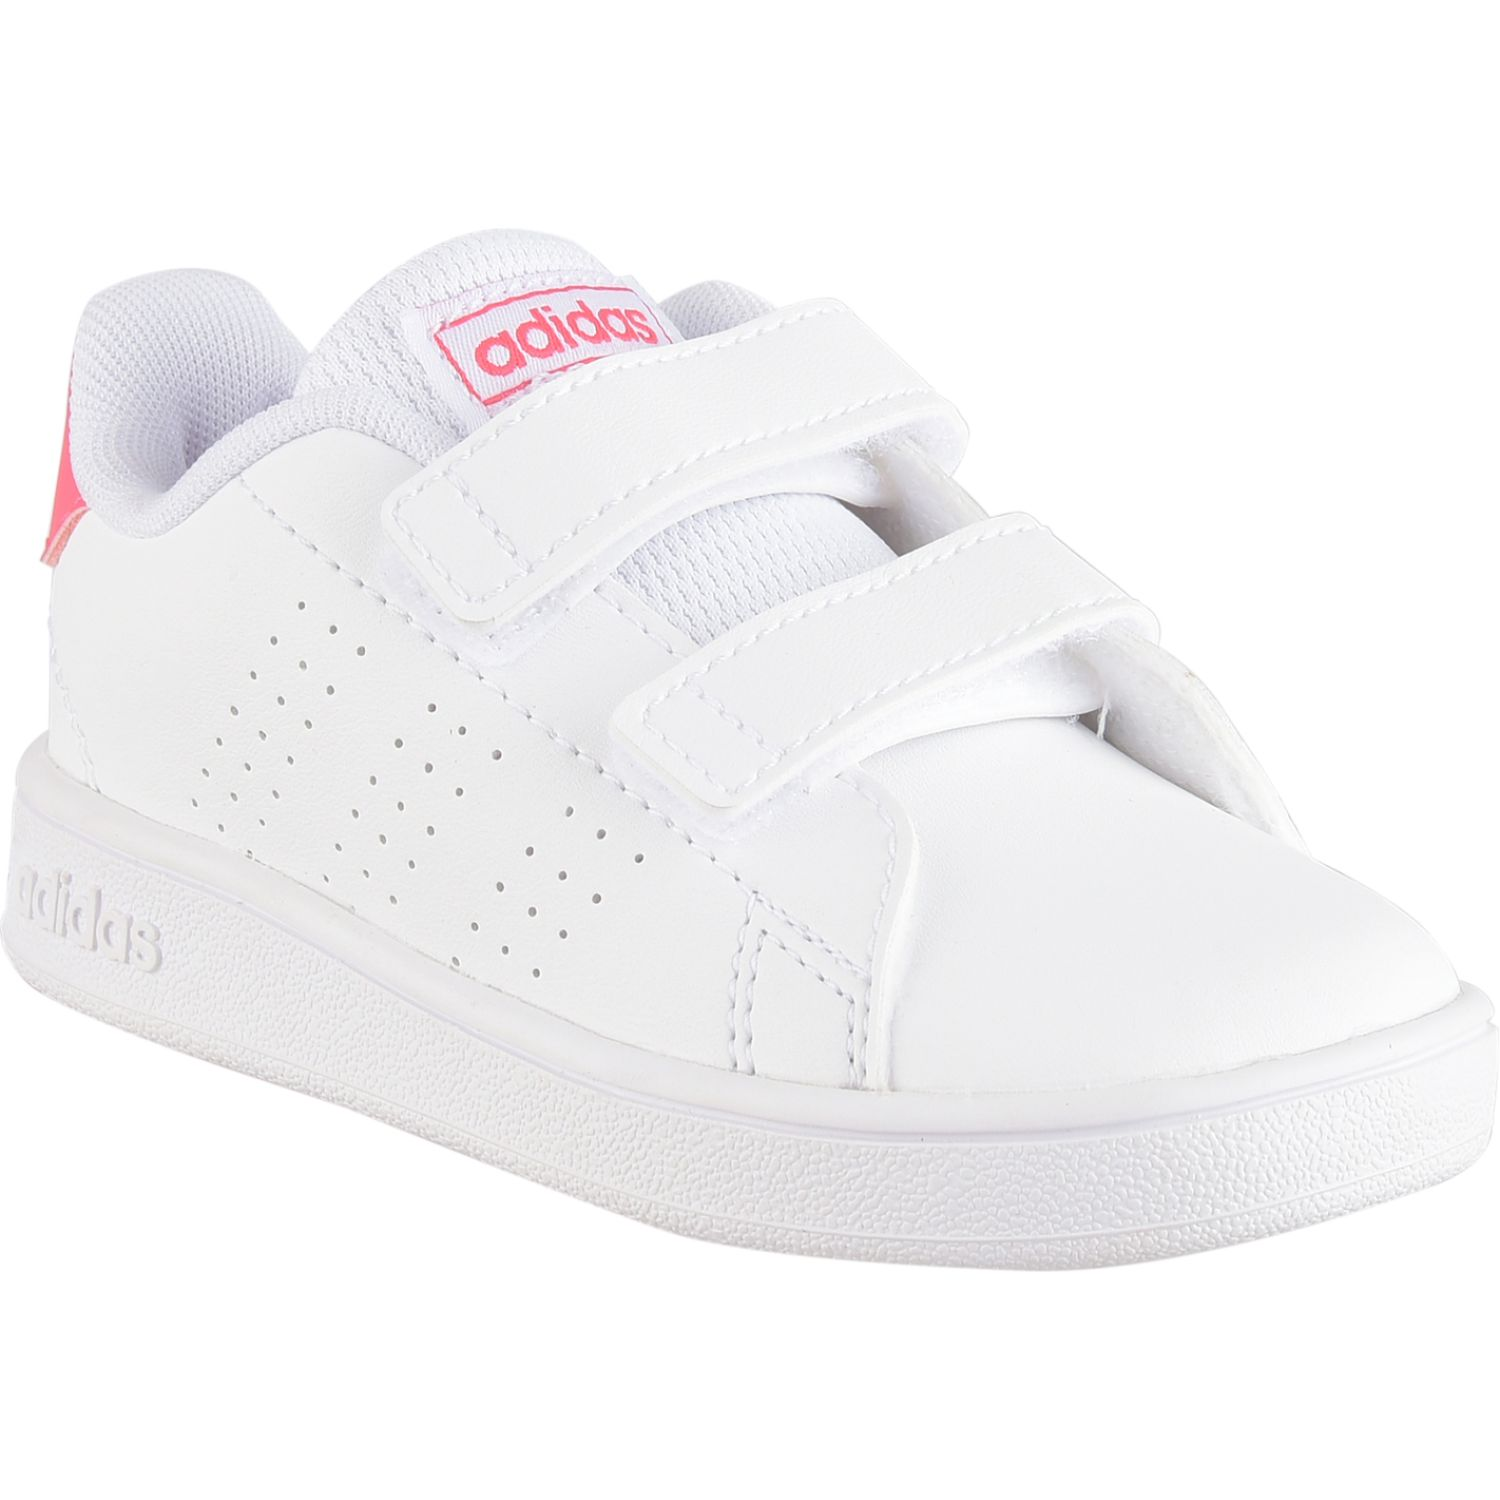 Adidas advantage i Blanco / rosado Zapatillas